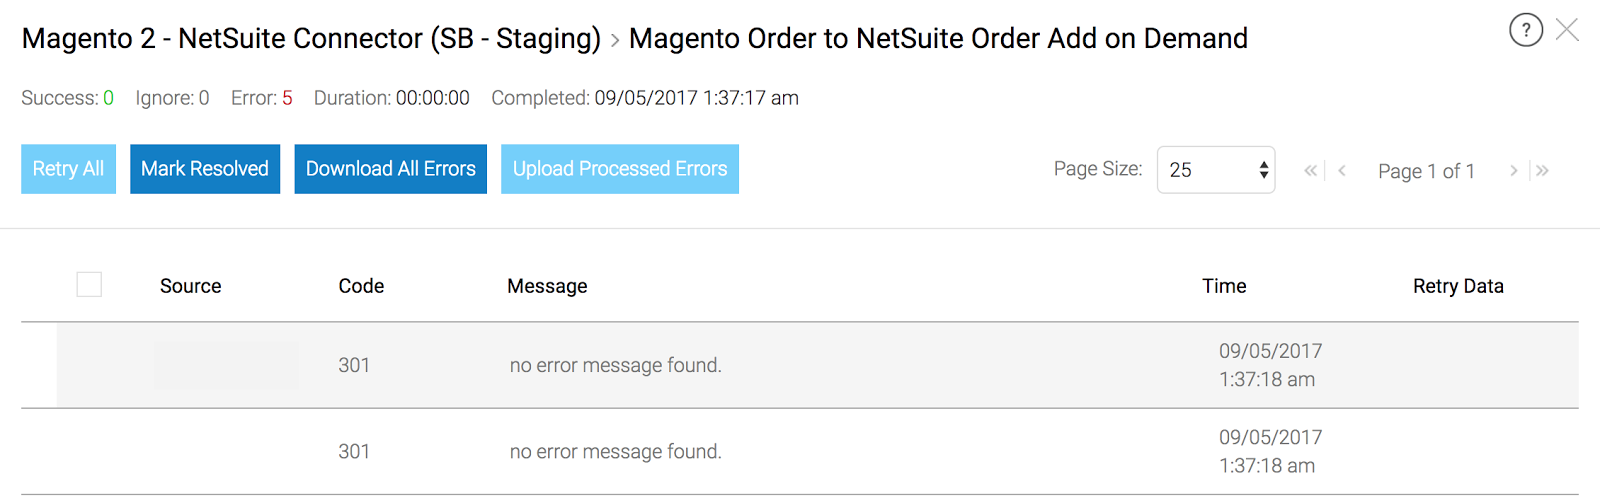 magento_2_netsuite_connector_.png